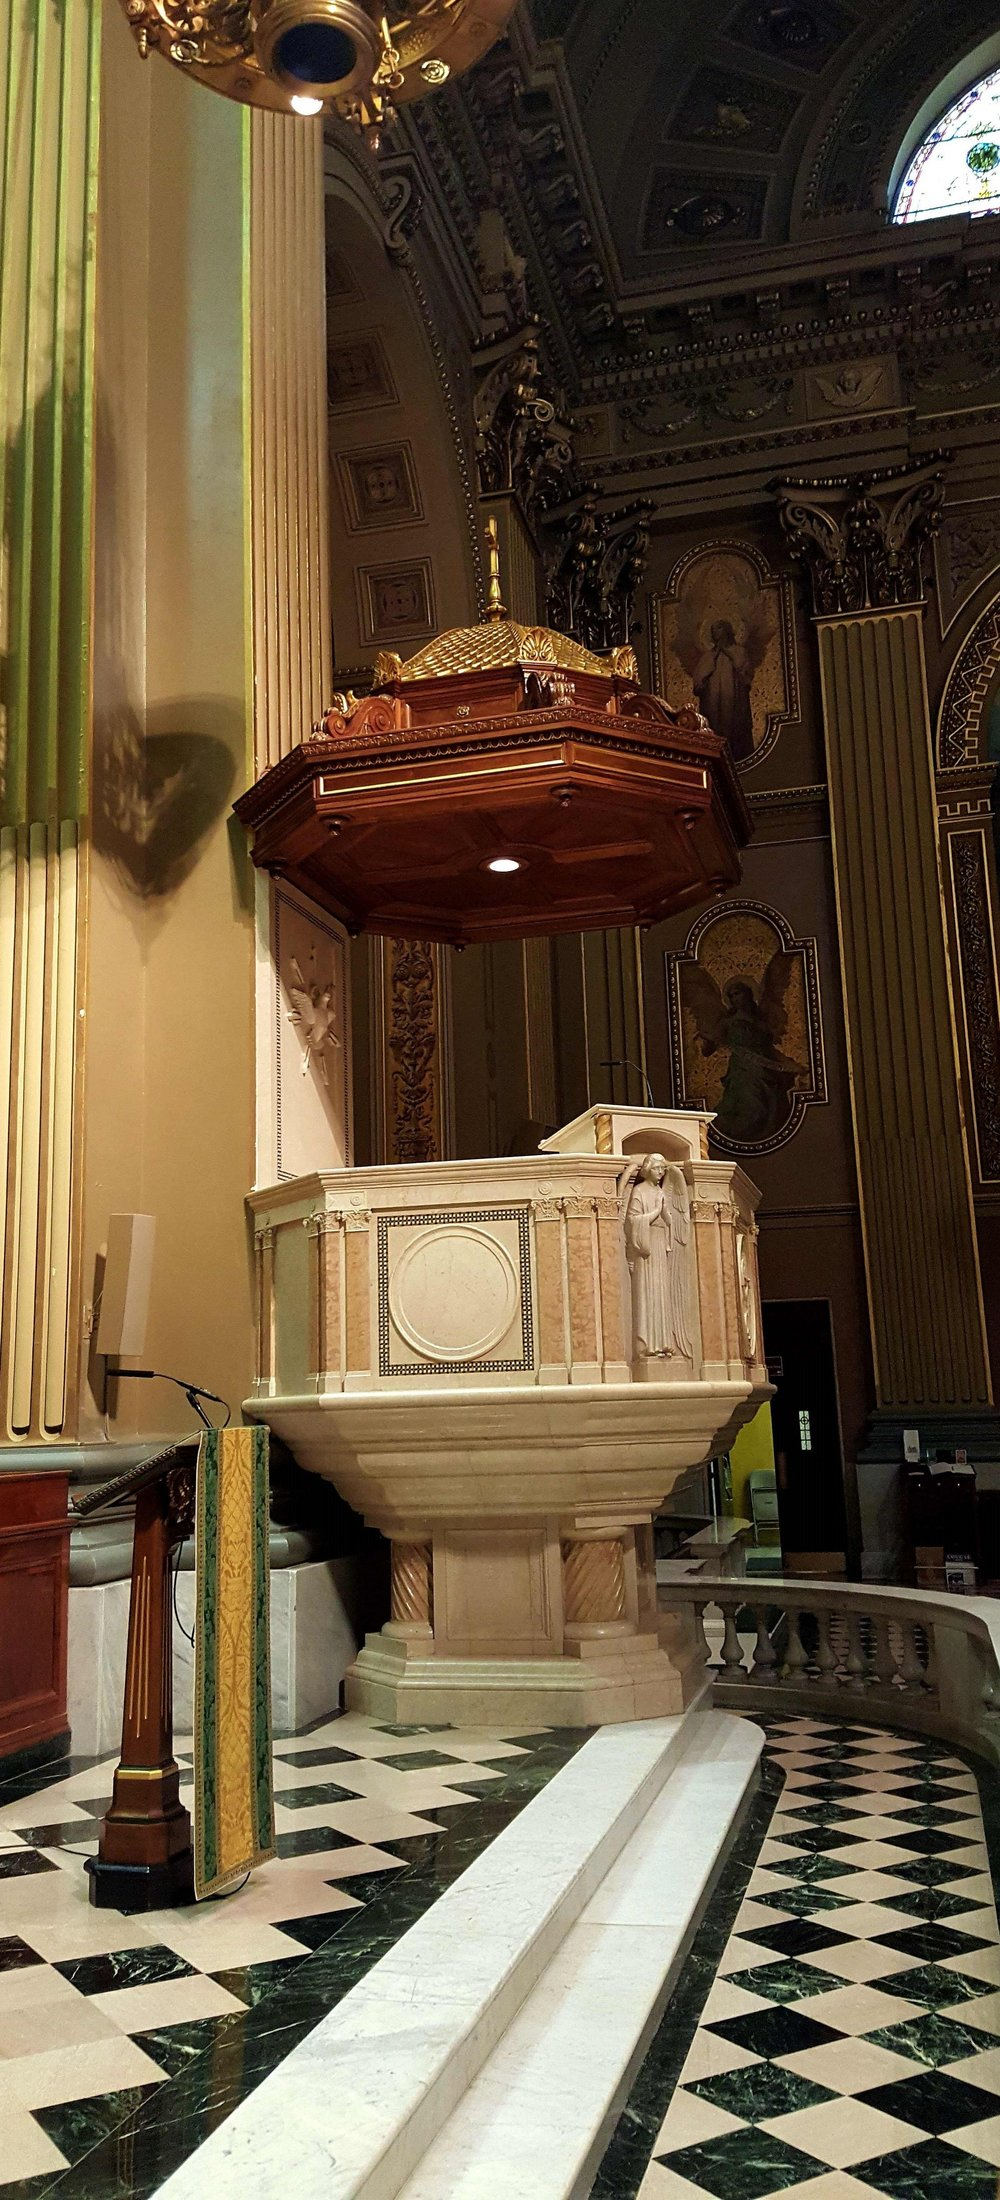 A line array provides coverage in the front pews. The cantor uses an Audio-Technica Engineered series microphone at the podium. An Engineered series microphone is also used on the pulpit.